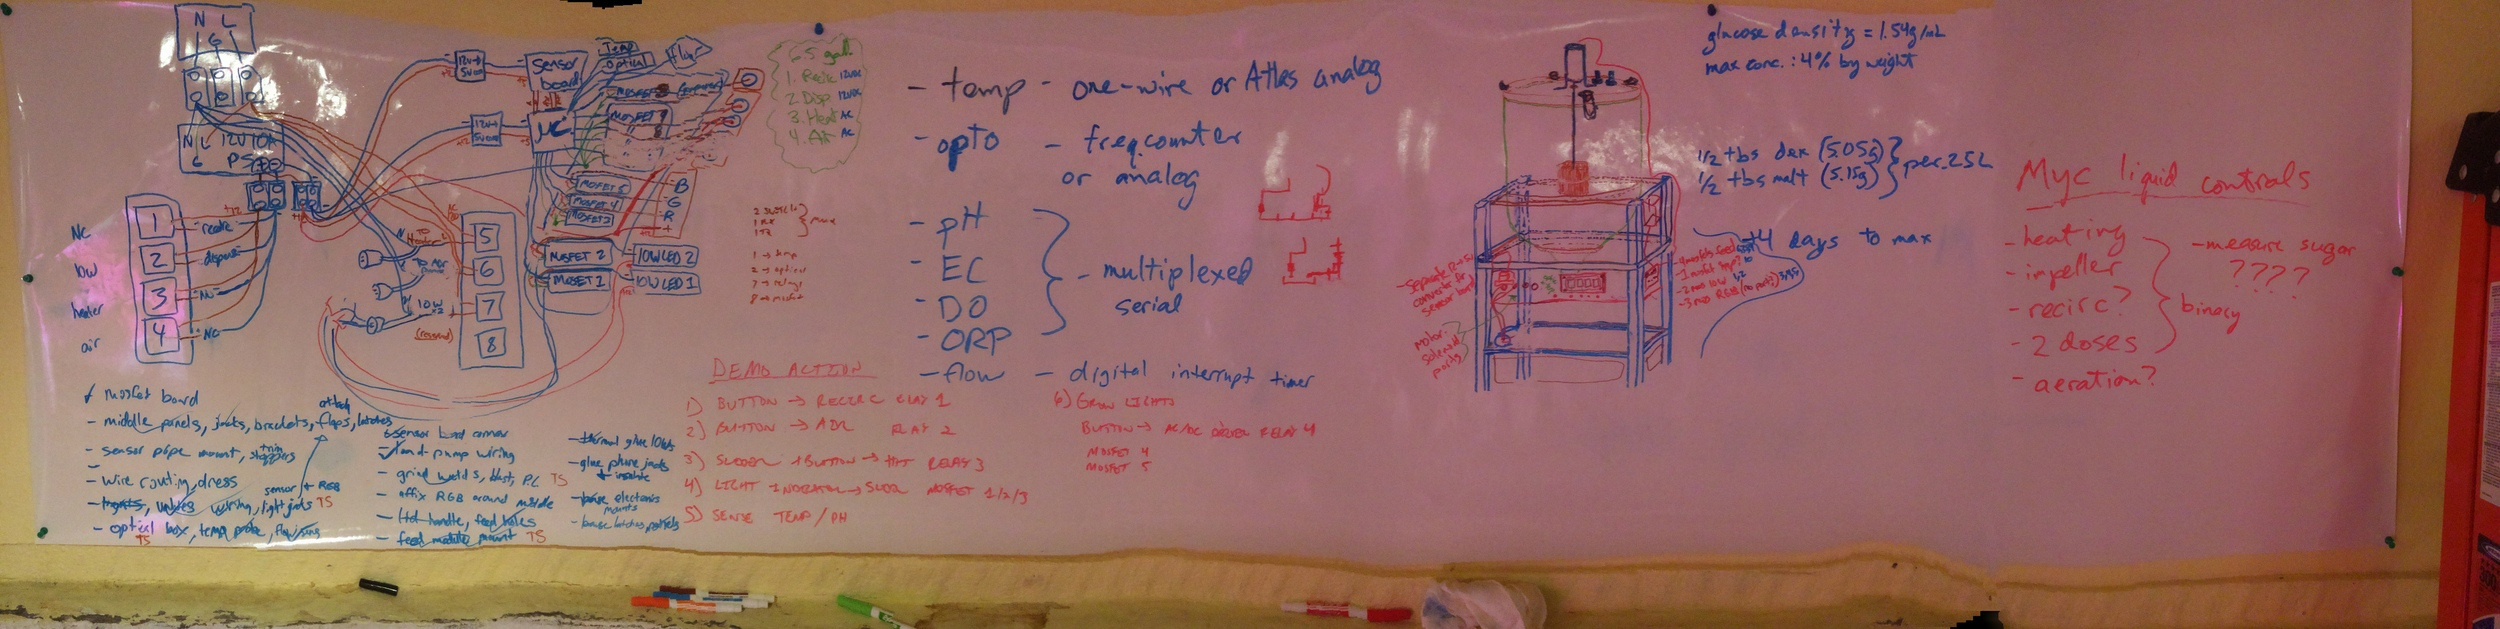 With a proof-of-concept model out of the way, we began designing a more-robust and fully-featured prototype.